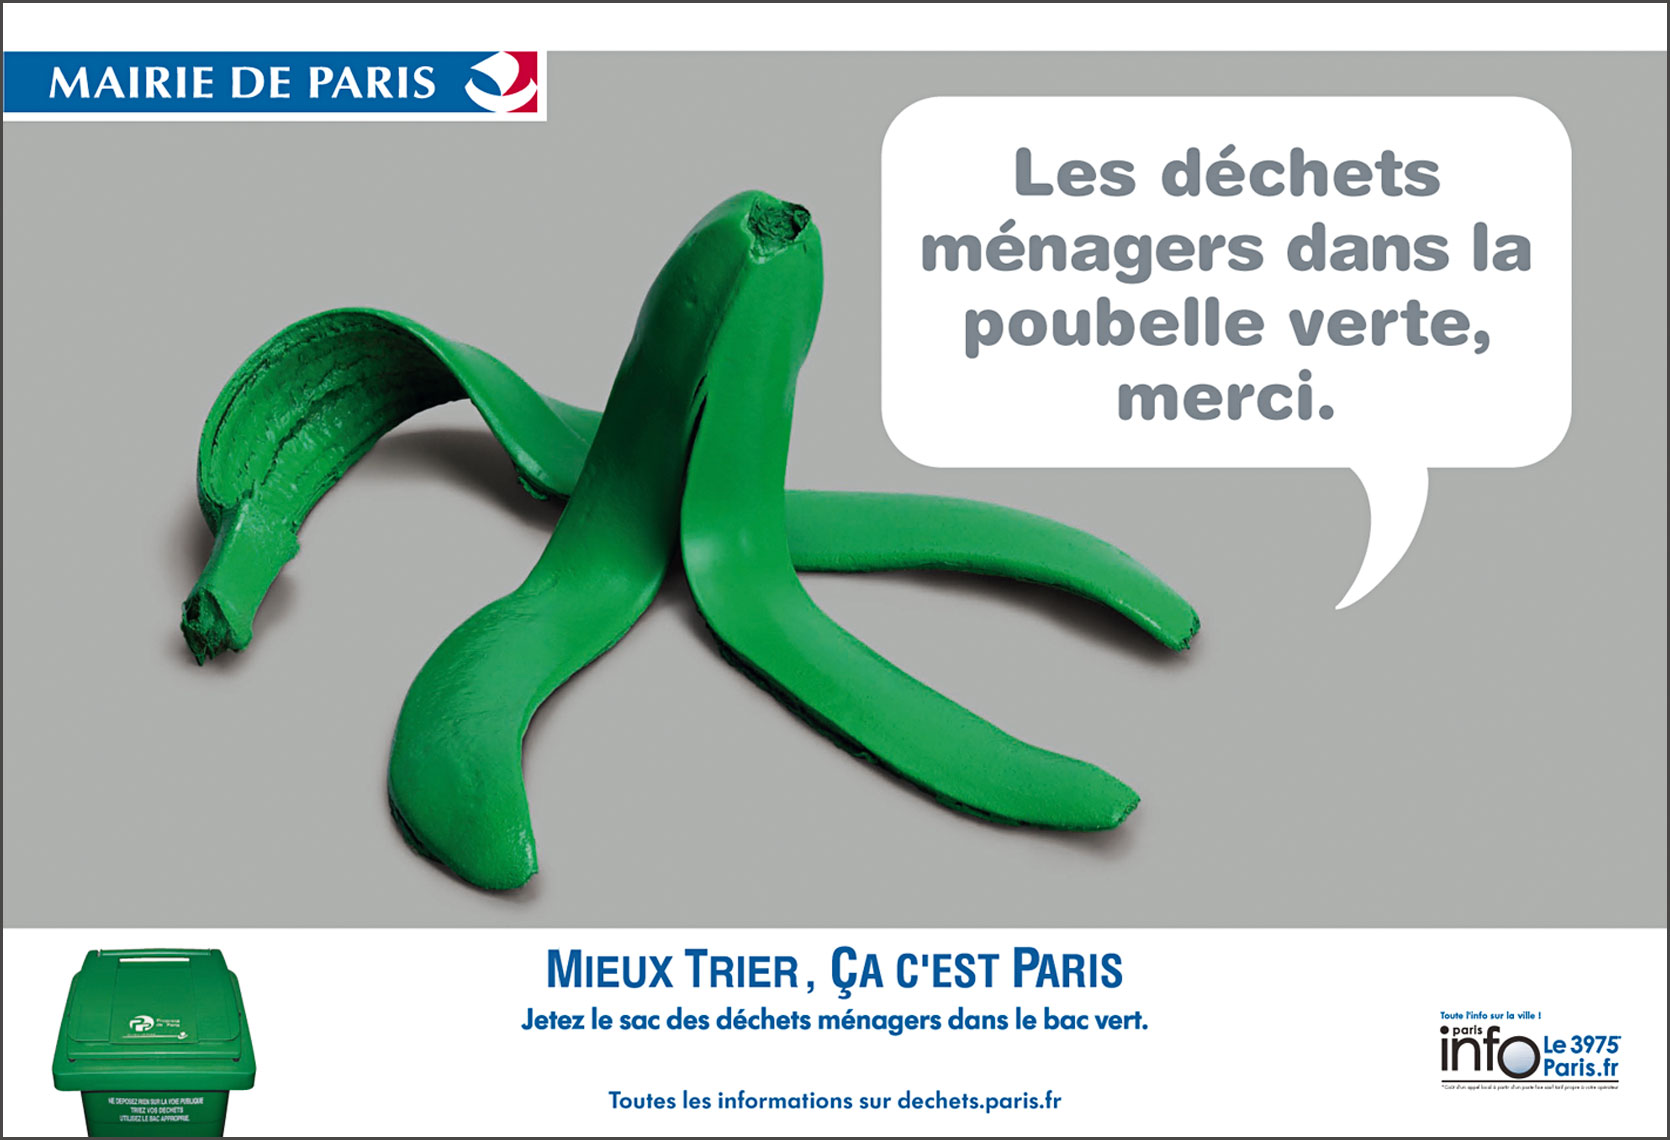 MAIRIE DE PARIS x McCANN PARIS